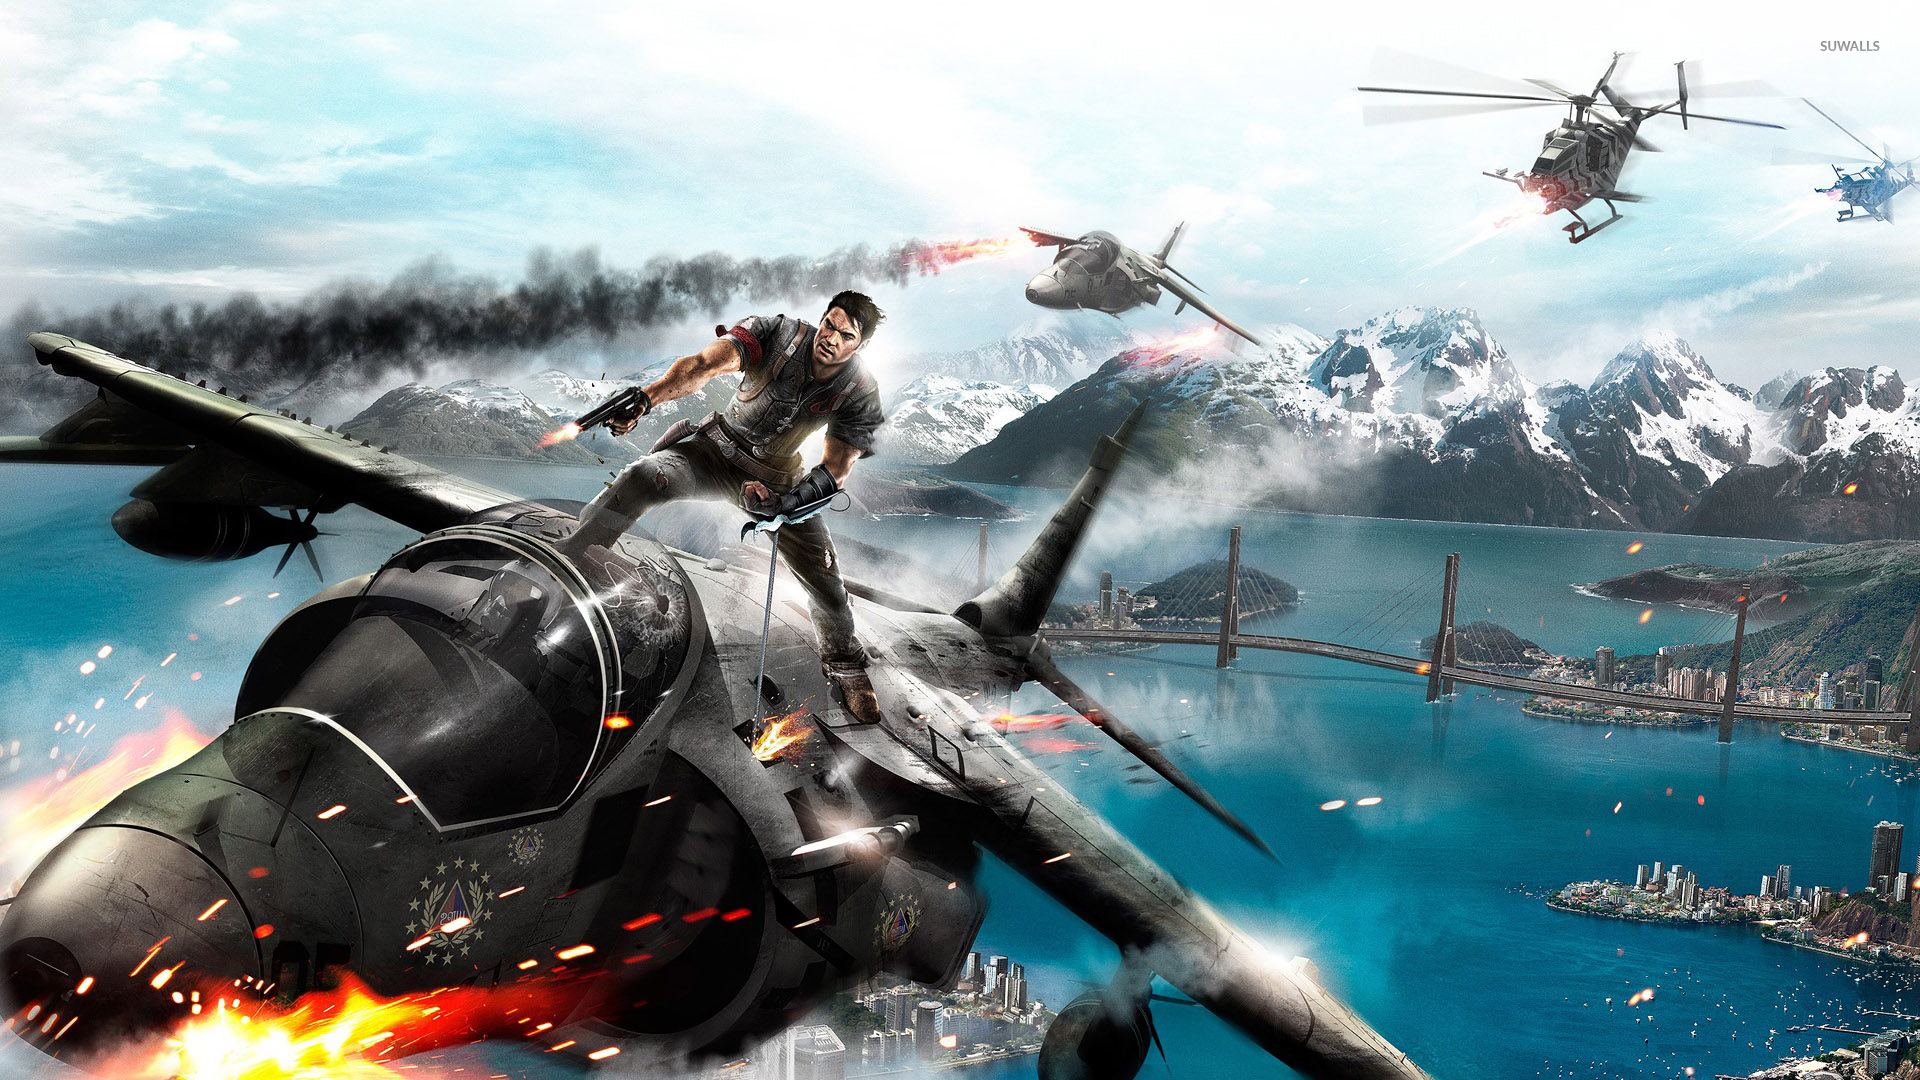 Just Cause 3 soldier on the plane wallpaper - Game wallpapers - #54543